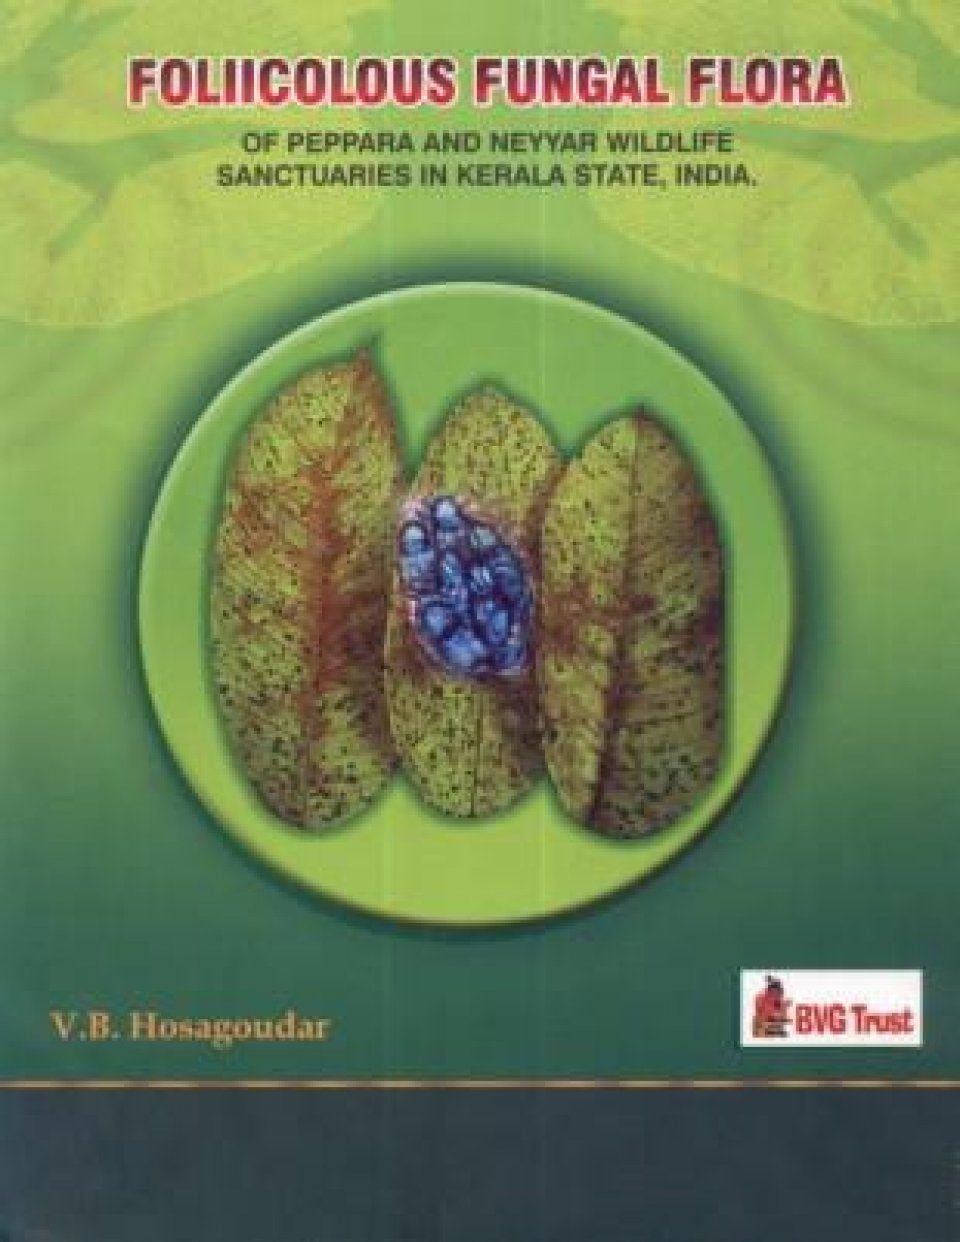 Foliicolous Fungal Flora of Peppara and Neyyar Wildlife Sanctuaries in Kerala State, India